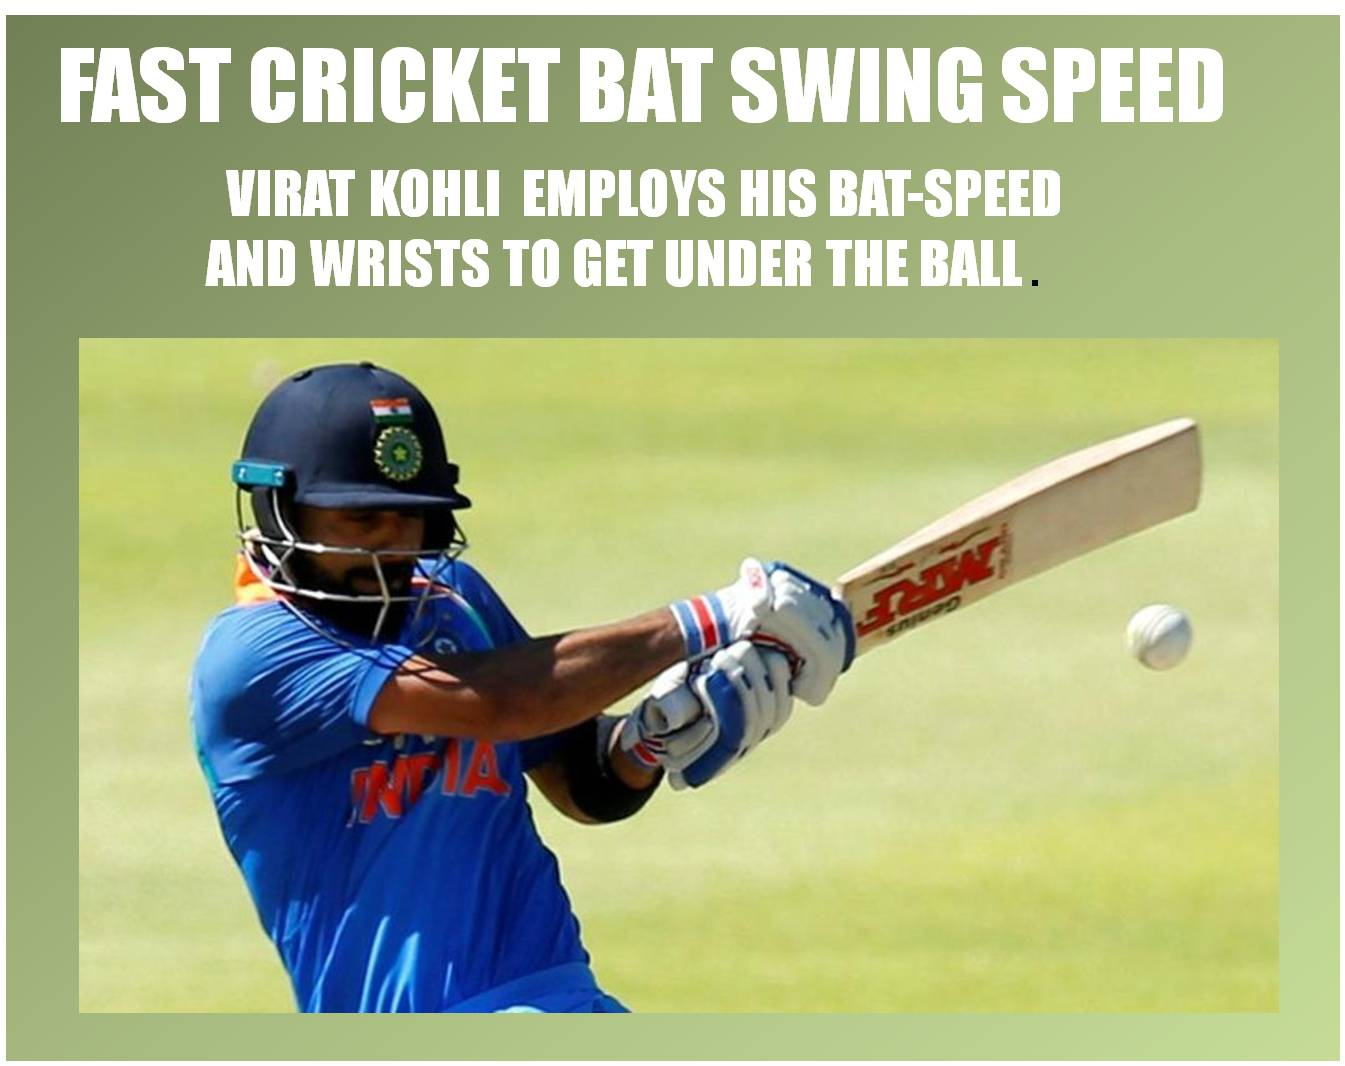 MRF_VIRAT_KHOLI_PLAYING_STYLE_FAST_CRICKET_BAT_SWING_SPEED.jpg